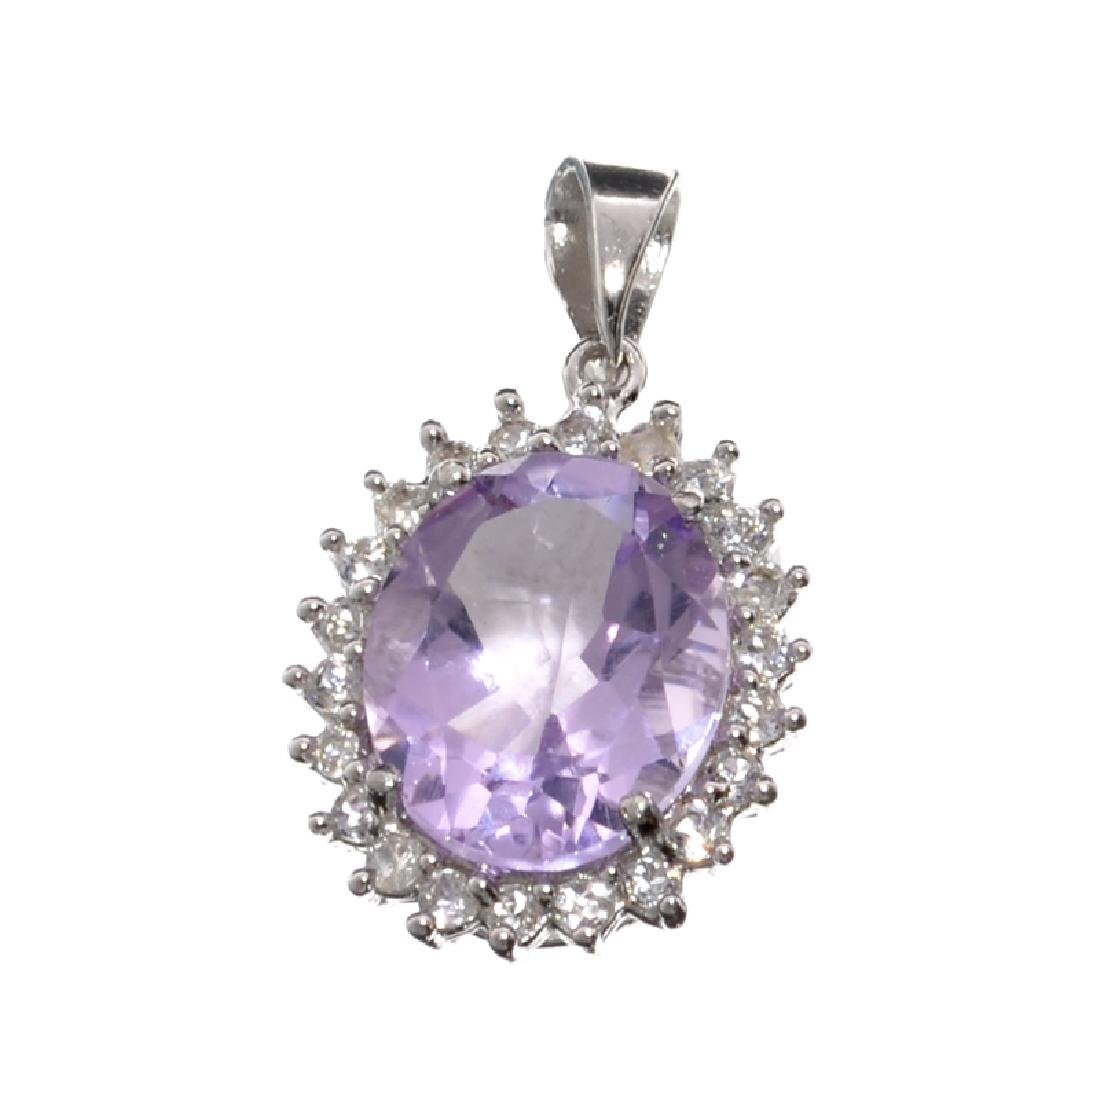 APP: 0.6k Fine Jewelry 3.40CT Purple Amethyst And White